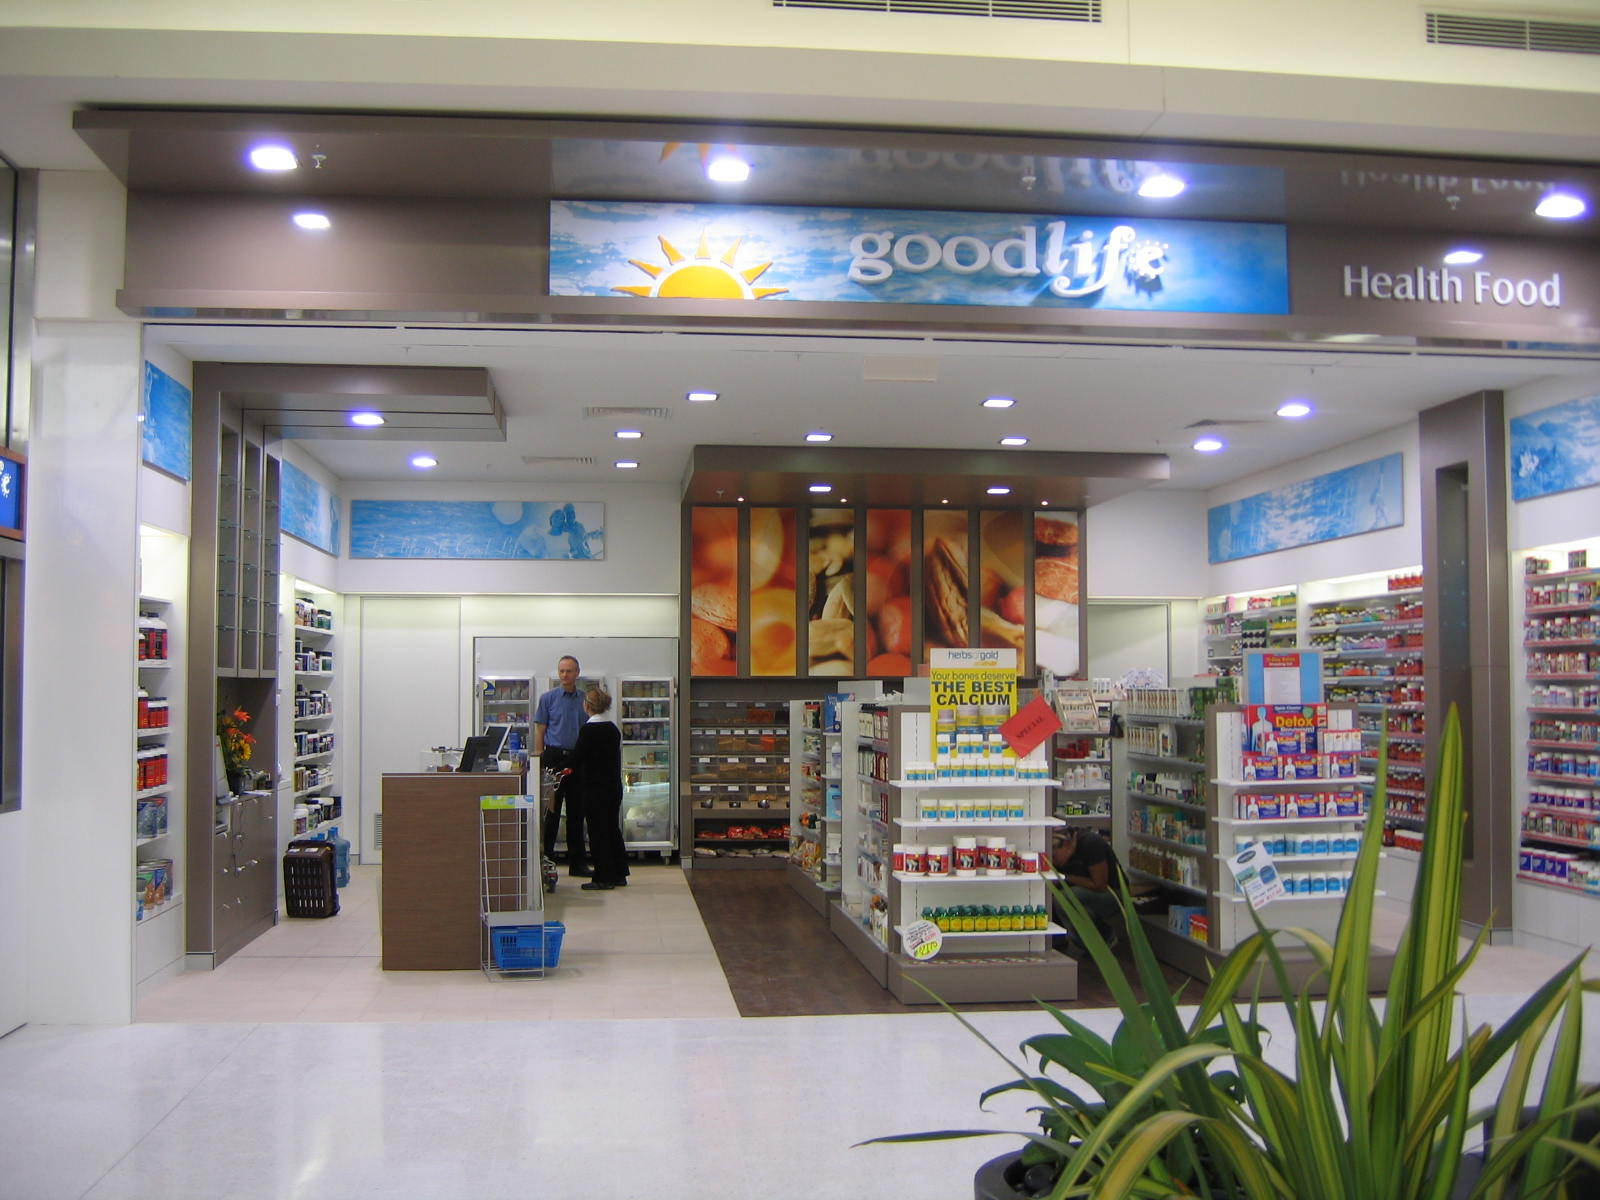 Good life Health Foods [Concept Store] - Westfield Innaloo. W.Australia